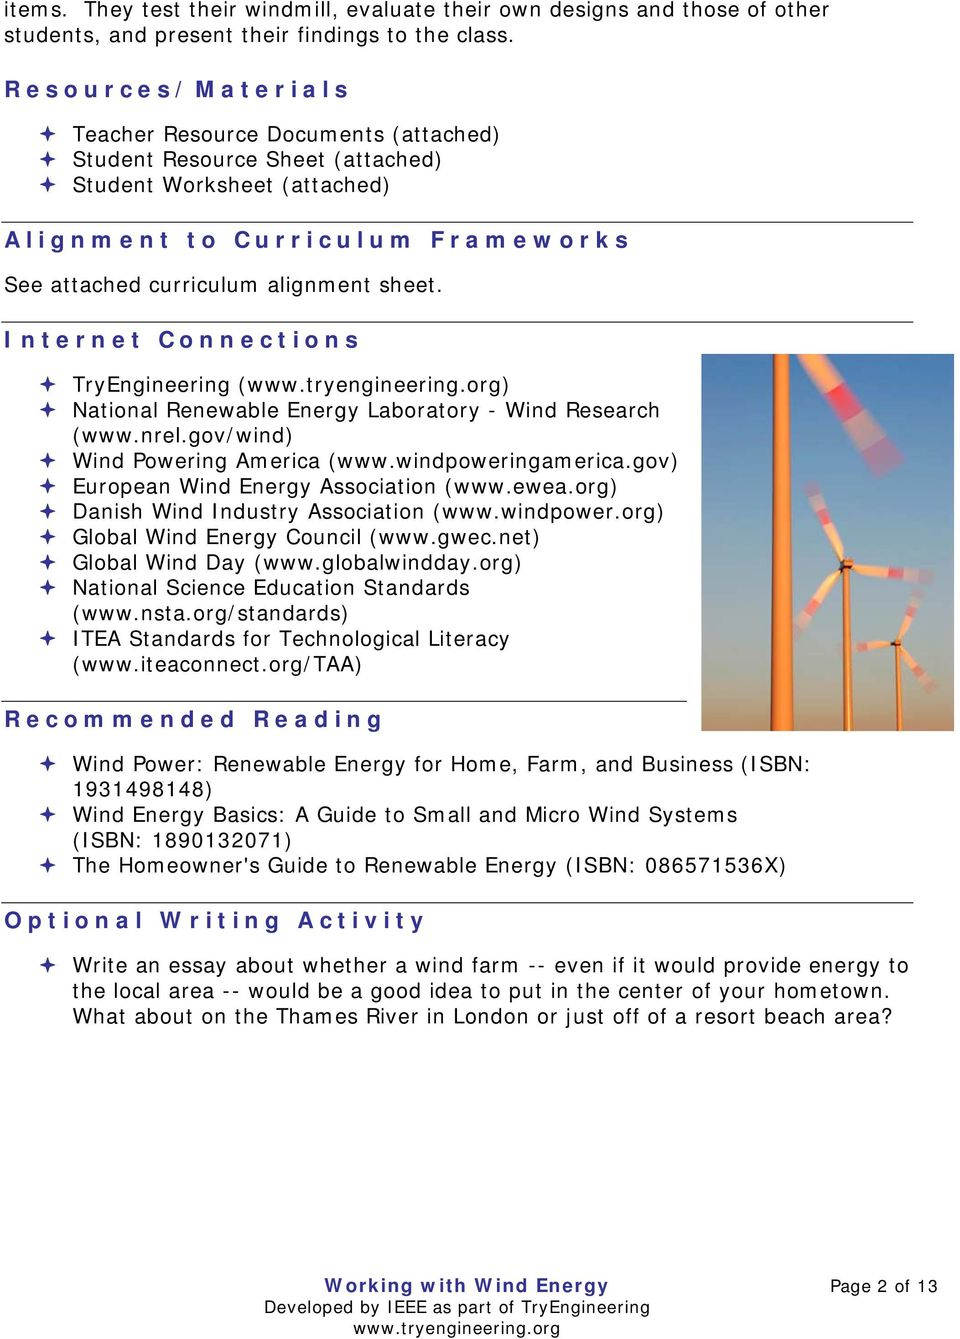 Compare And Contrast Essay Conclusion Internet Connections Tryengineering  National Renewable Energy Laboratory   Wind Research Wwwnrel College Entrance Essay Examples also Abortion Against Essay Working With Wind Energy  Pdf Private Schools Vs Public Schools Essay